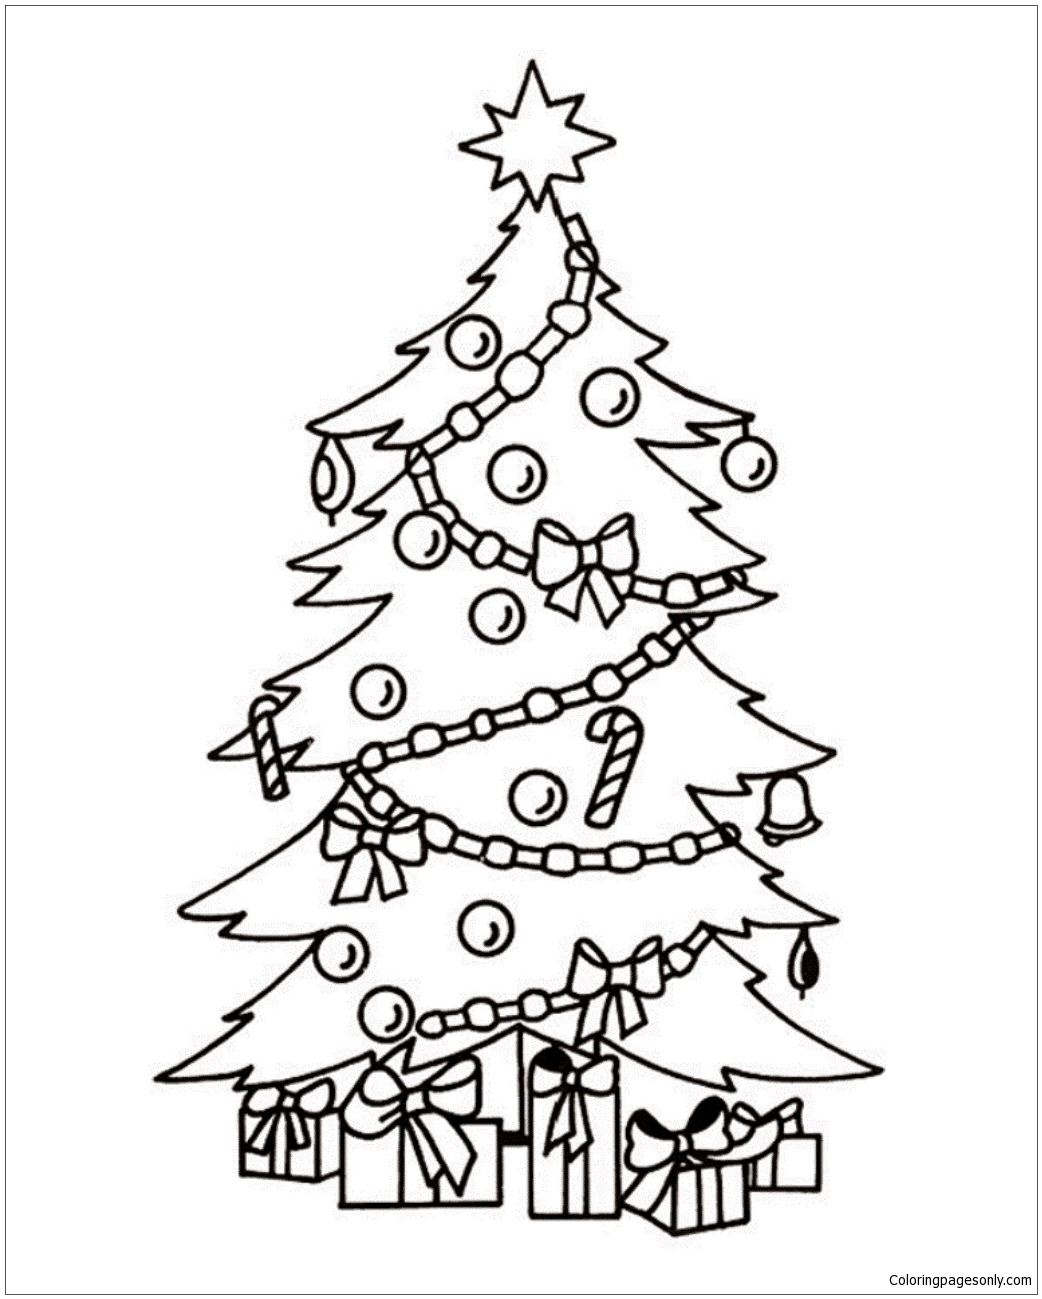 Christmas Tree And Presents 1 Coloring Page - Free Coloring Pages ...